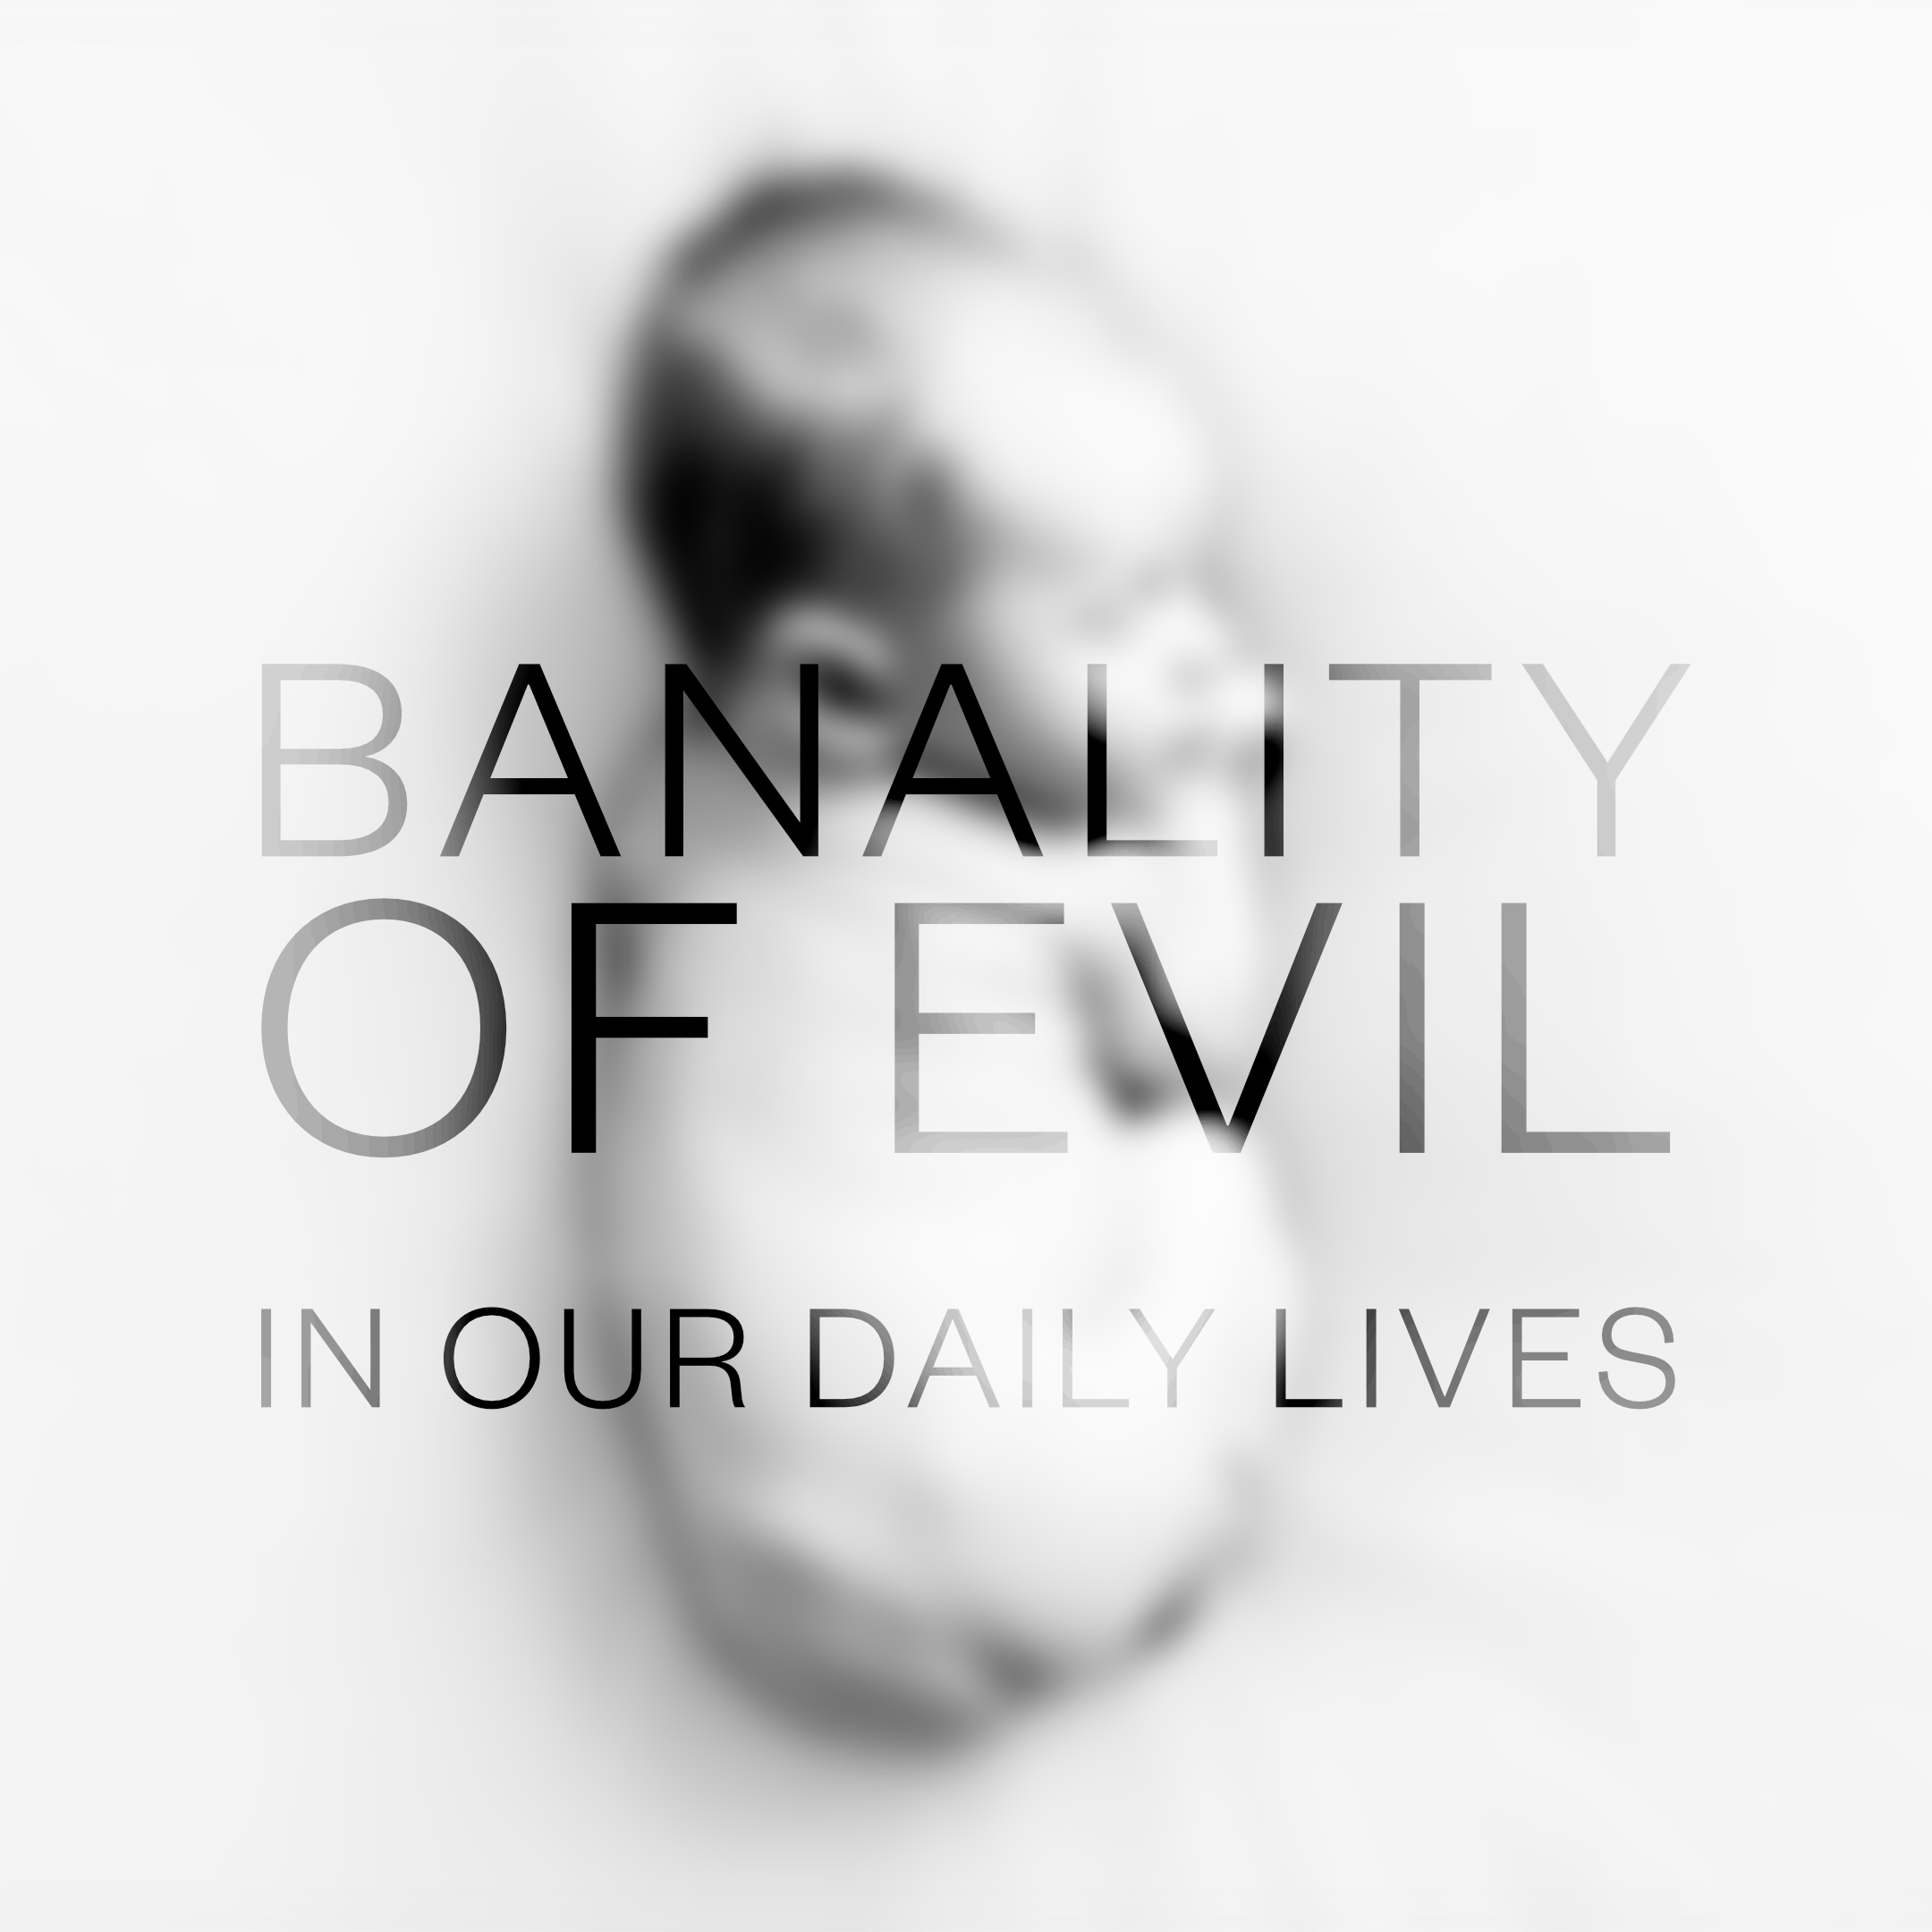 The Banality of Evil in our Daily Lives